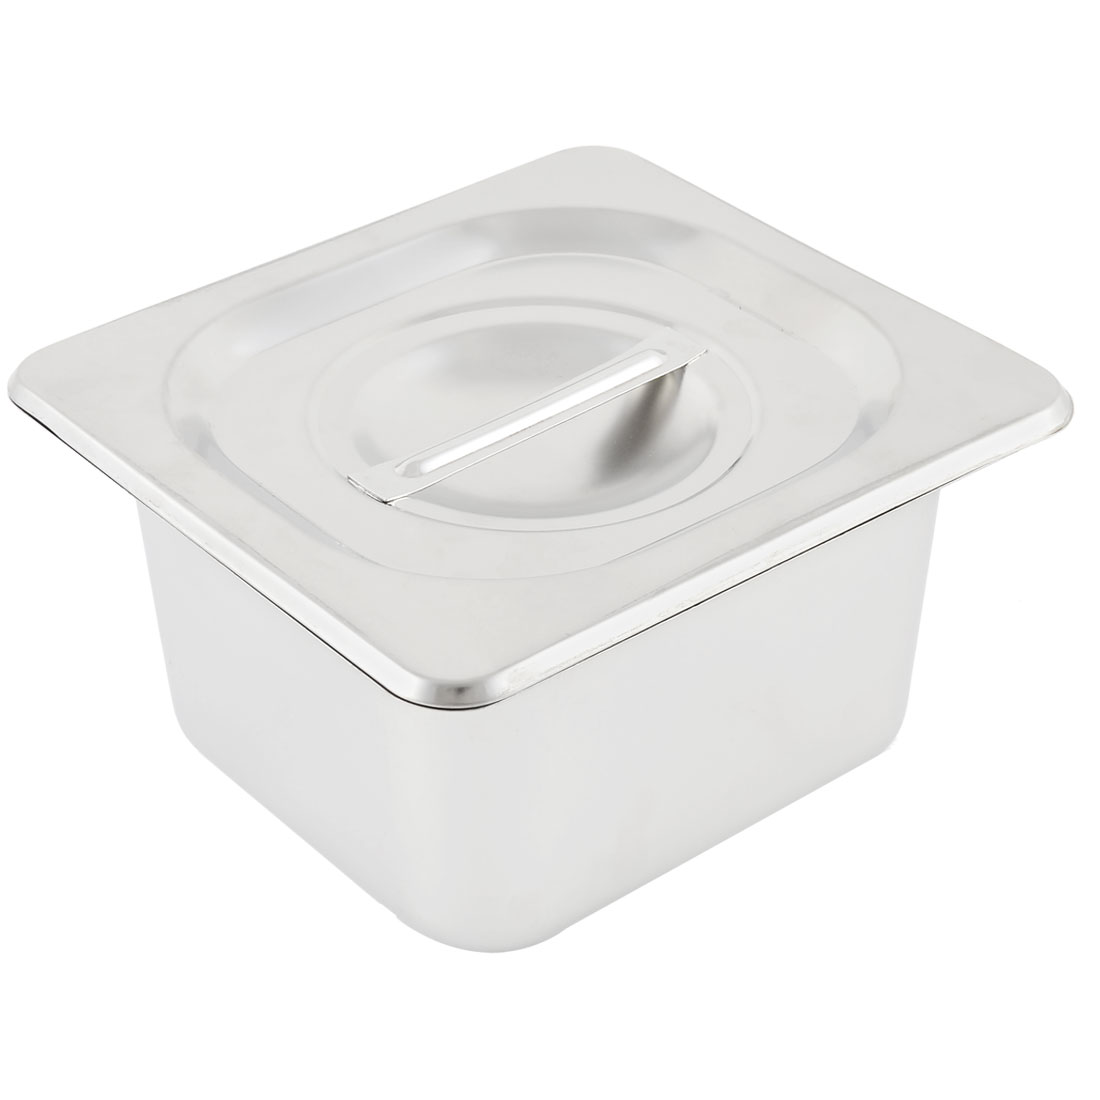 Home Kitchen Catering Stainless Steel Lid Food Storage Container Gastronorm Pan